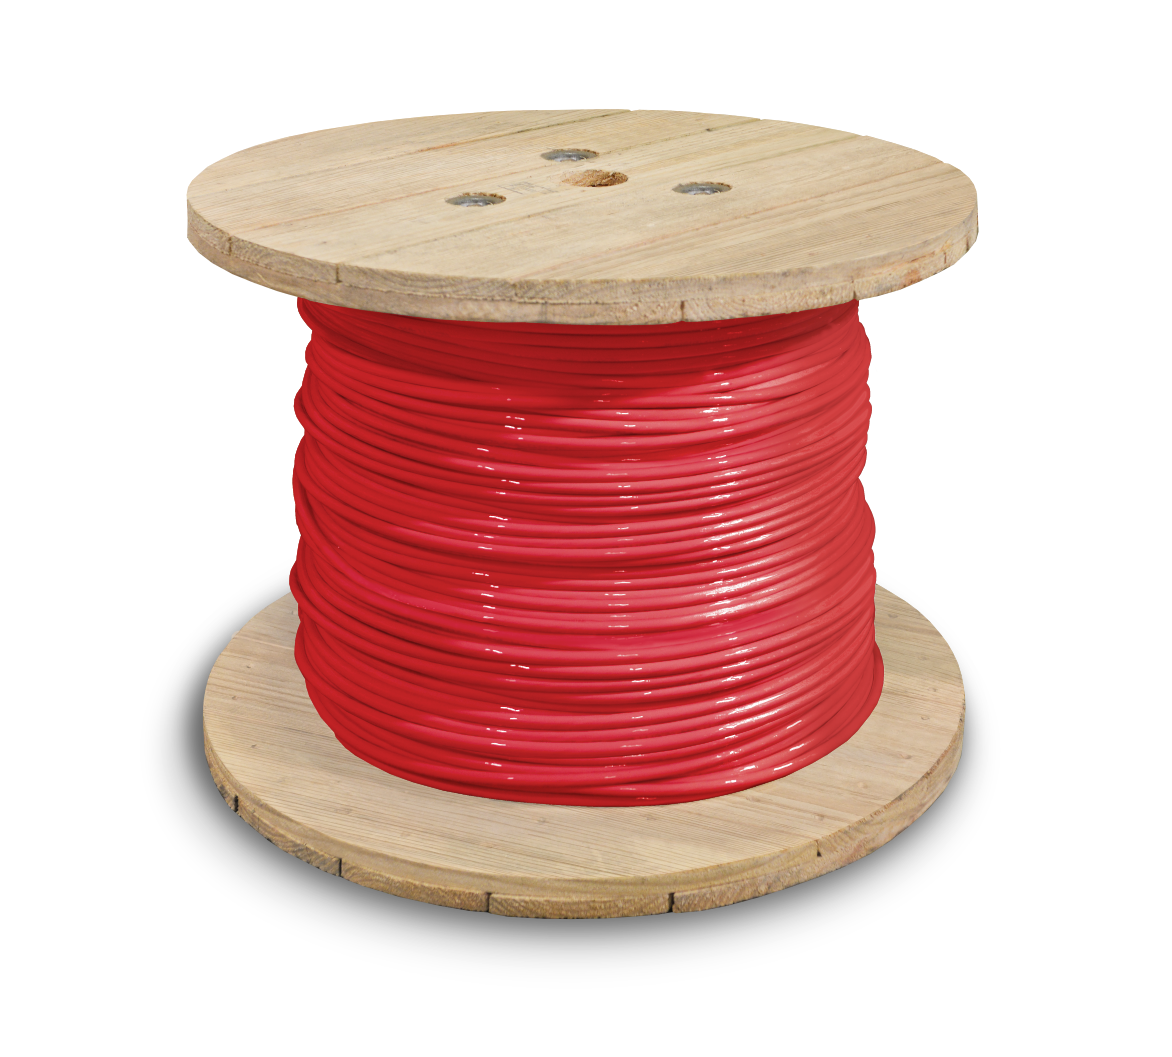 357859_THHN_1awg_2500ft_Red